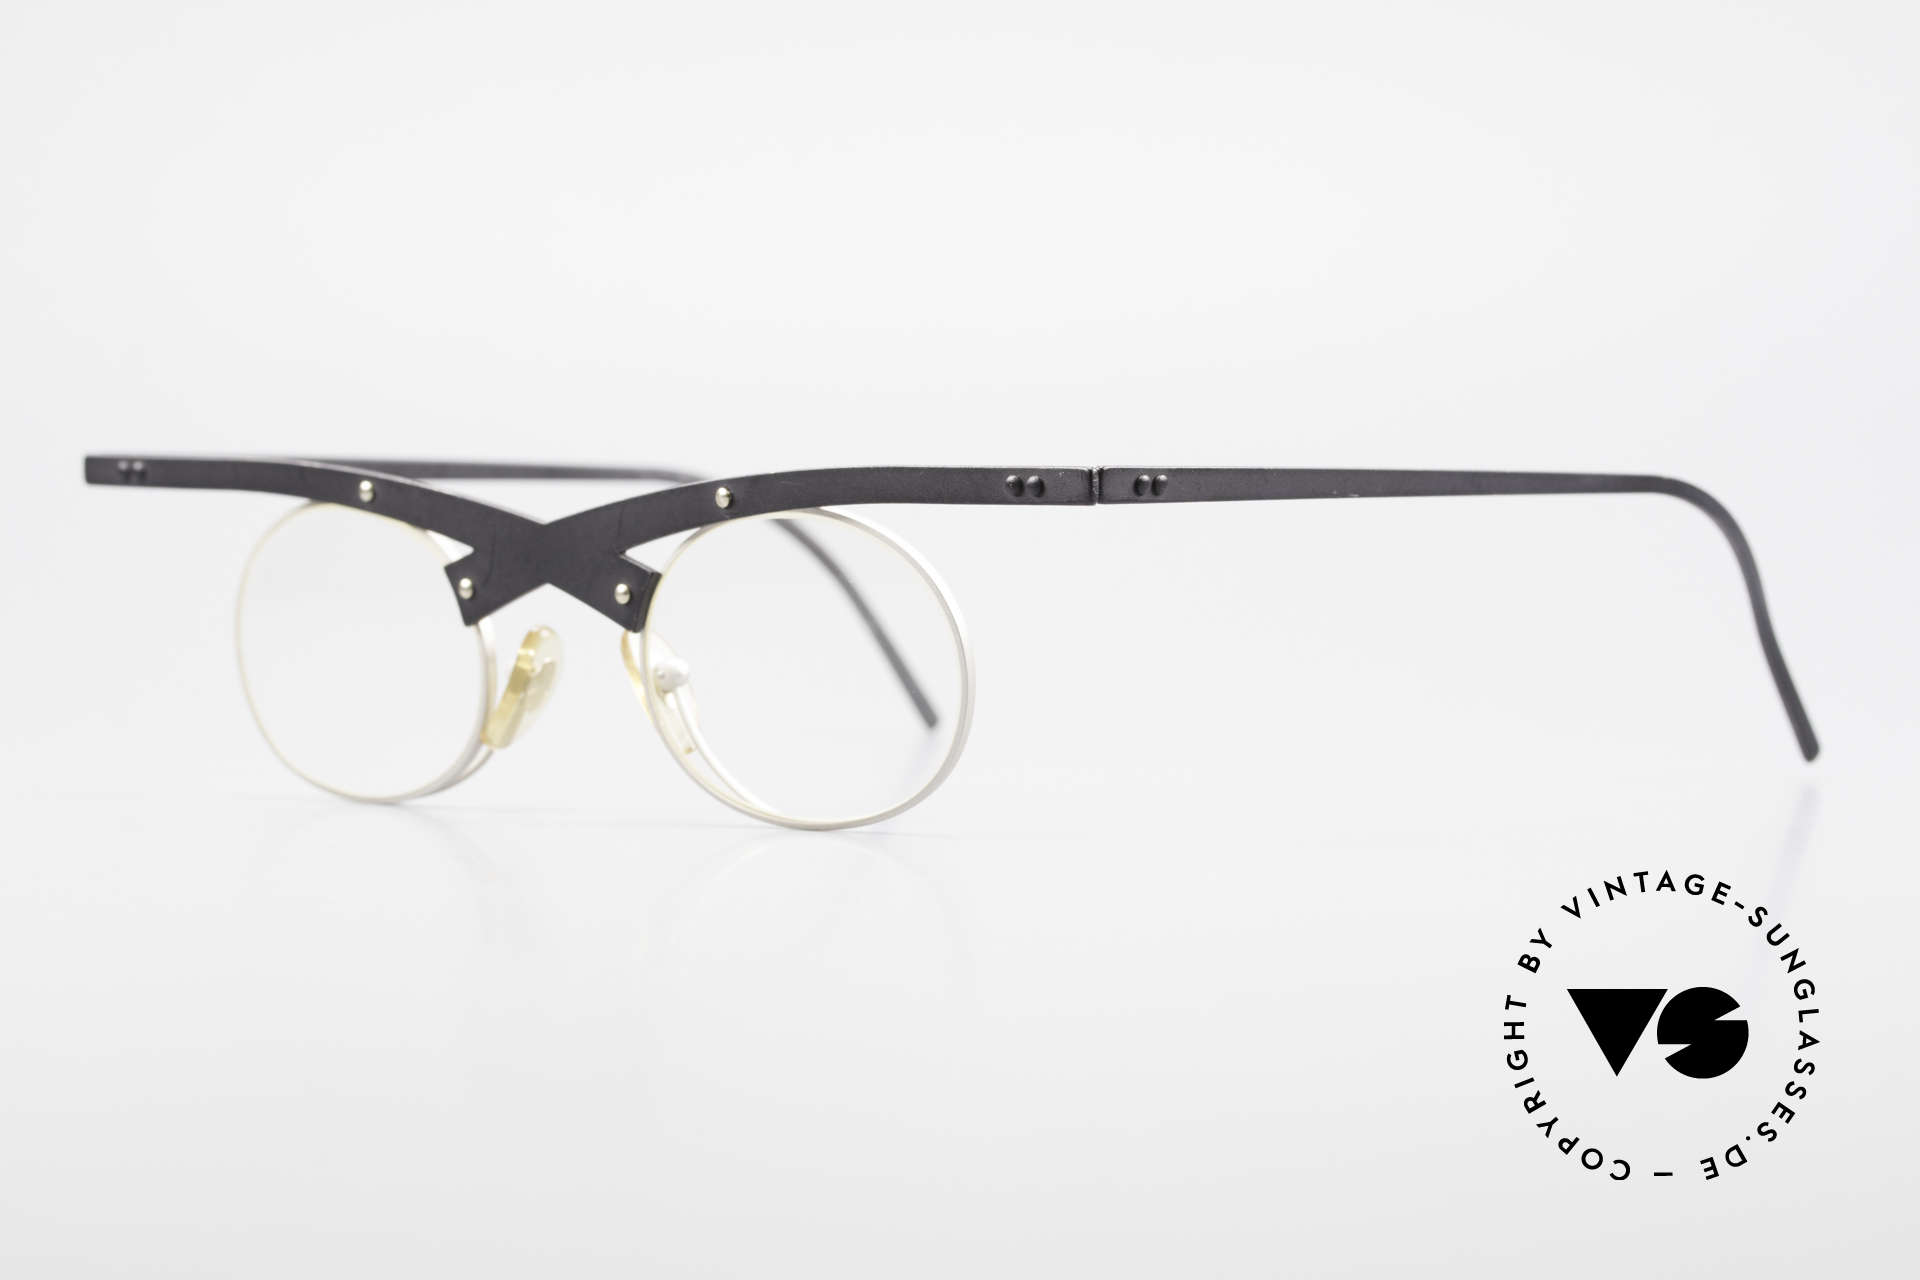 Theo Belgium Hio 11S Crazy 90's Vintage Eyeglasses, made for the avant-garde, individualists & trend-setters, Made for Men and Women